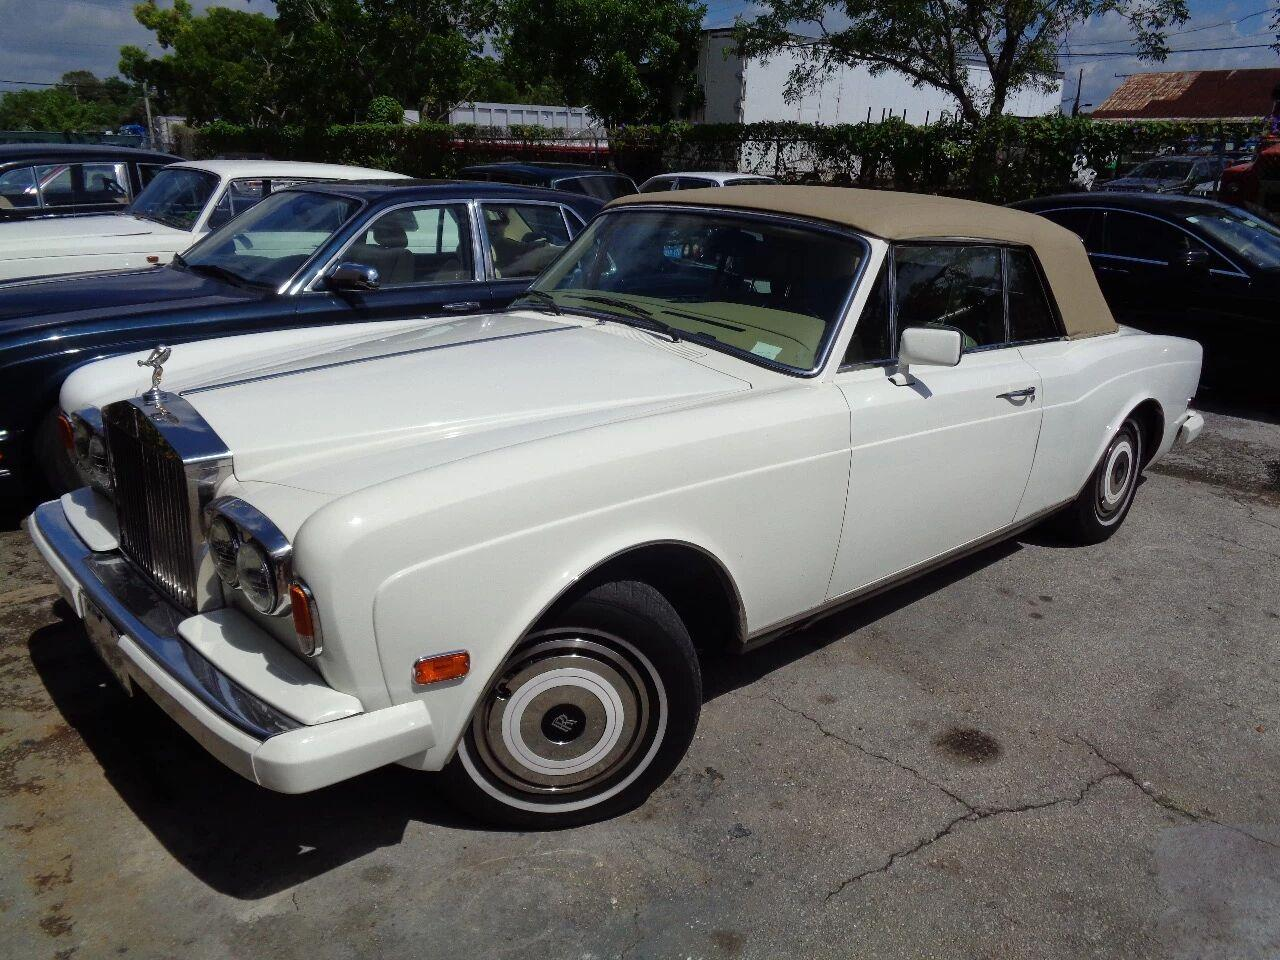 1985 Rolls-Royce Corniche (CC-1149234) for sale in Fort Lauderdale, Florida